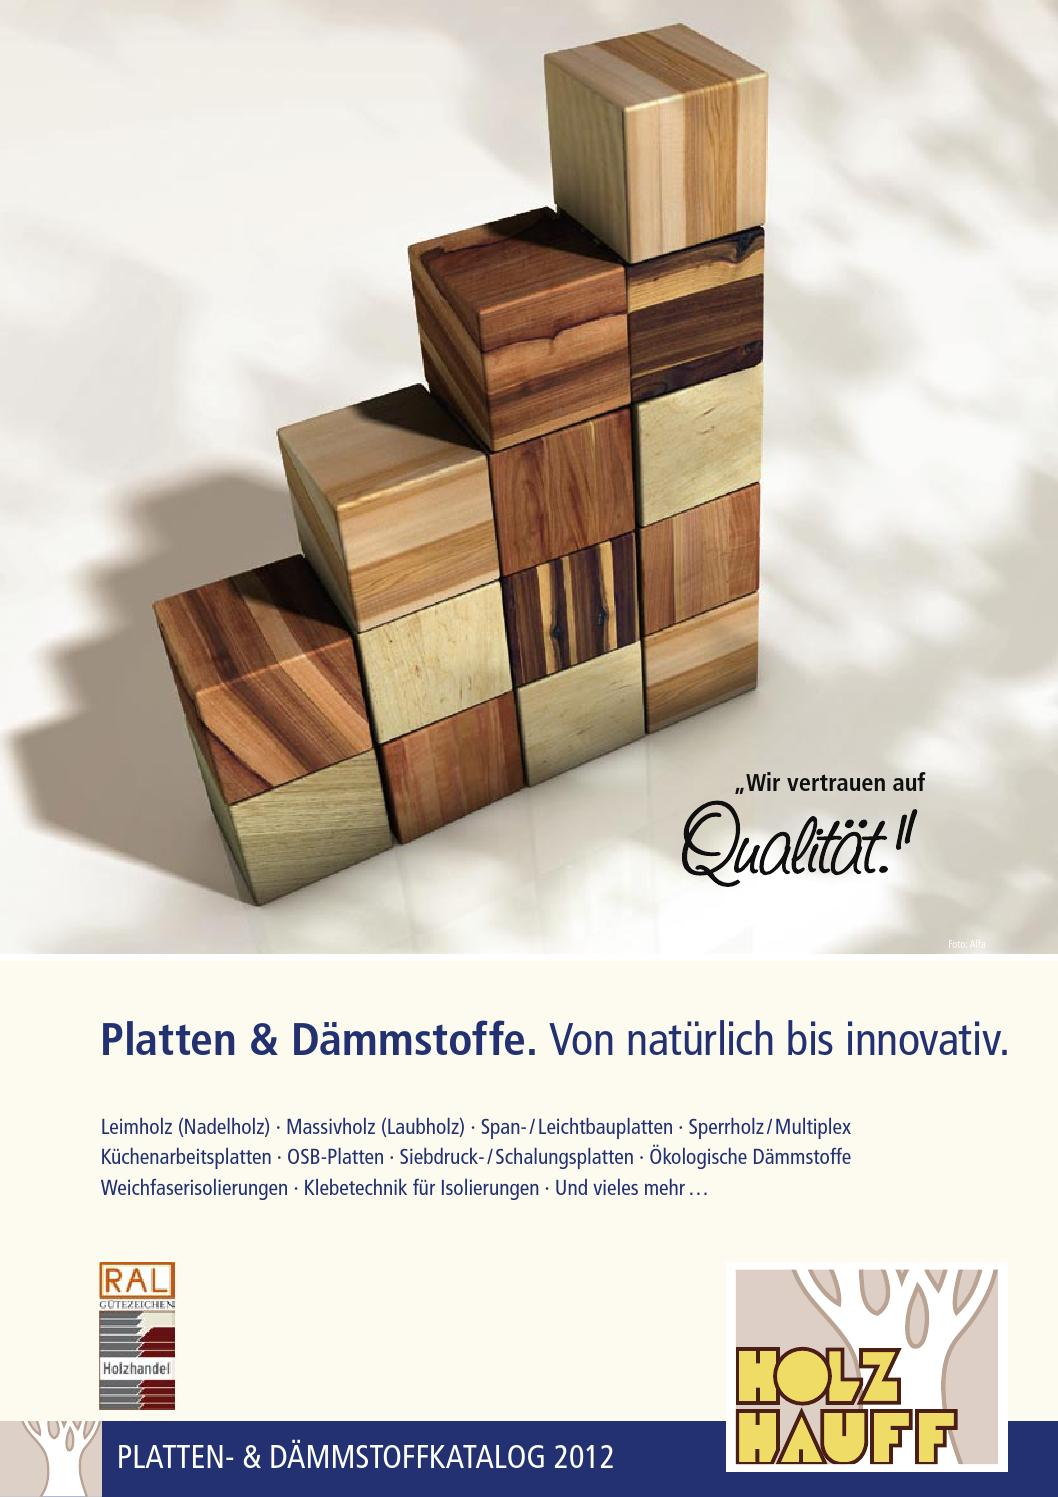 plattenkatalog 2012 by opus marketing gmbh issuu. Black Bedroom Furniture Sets. Home Design Ideas